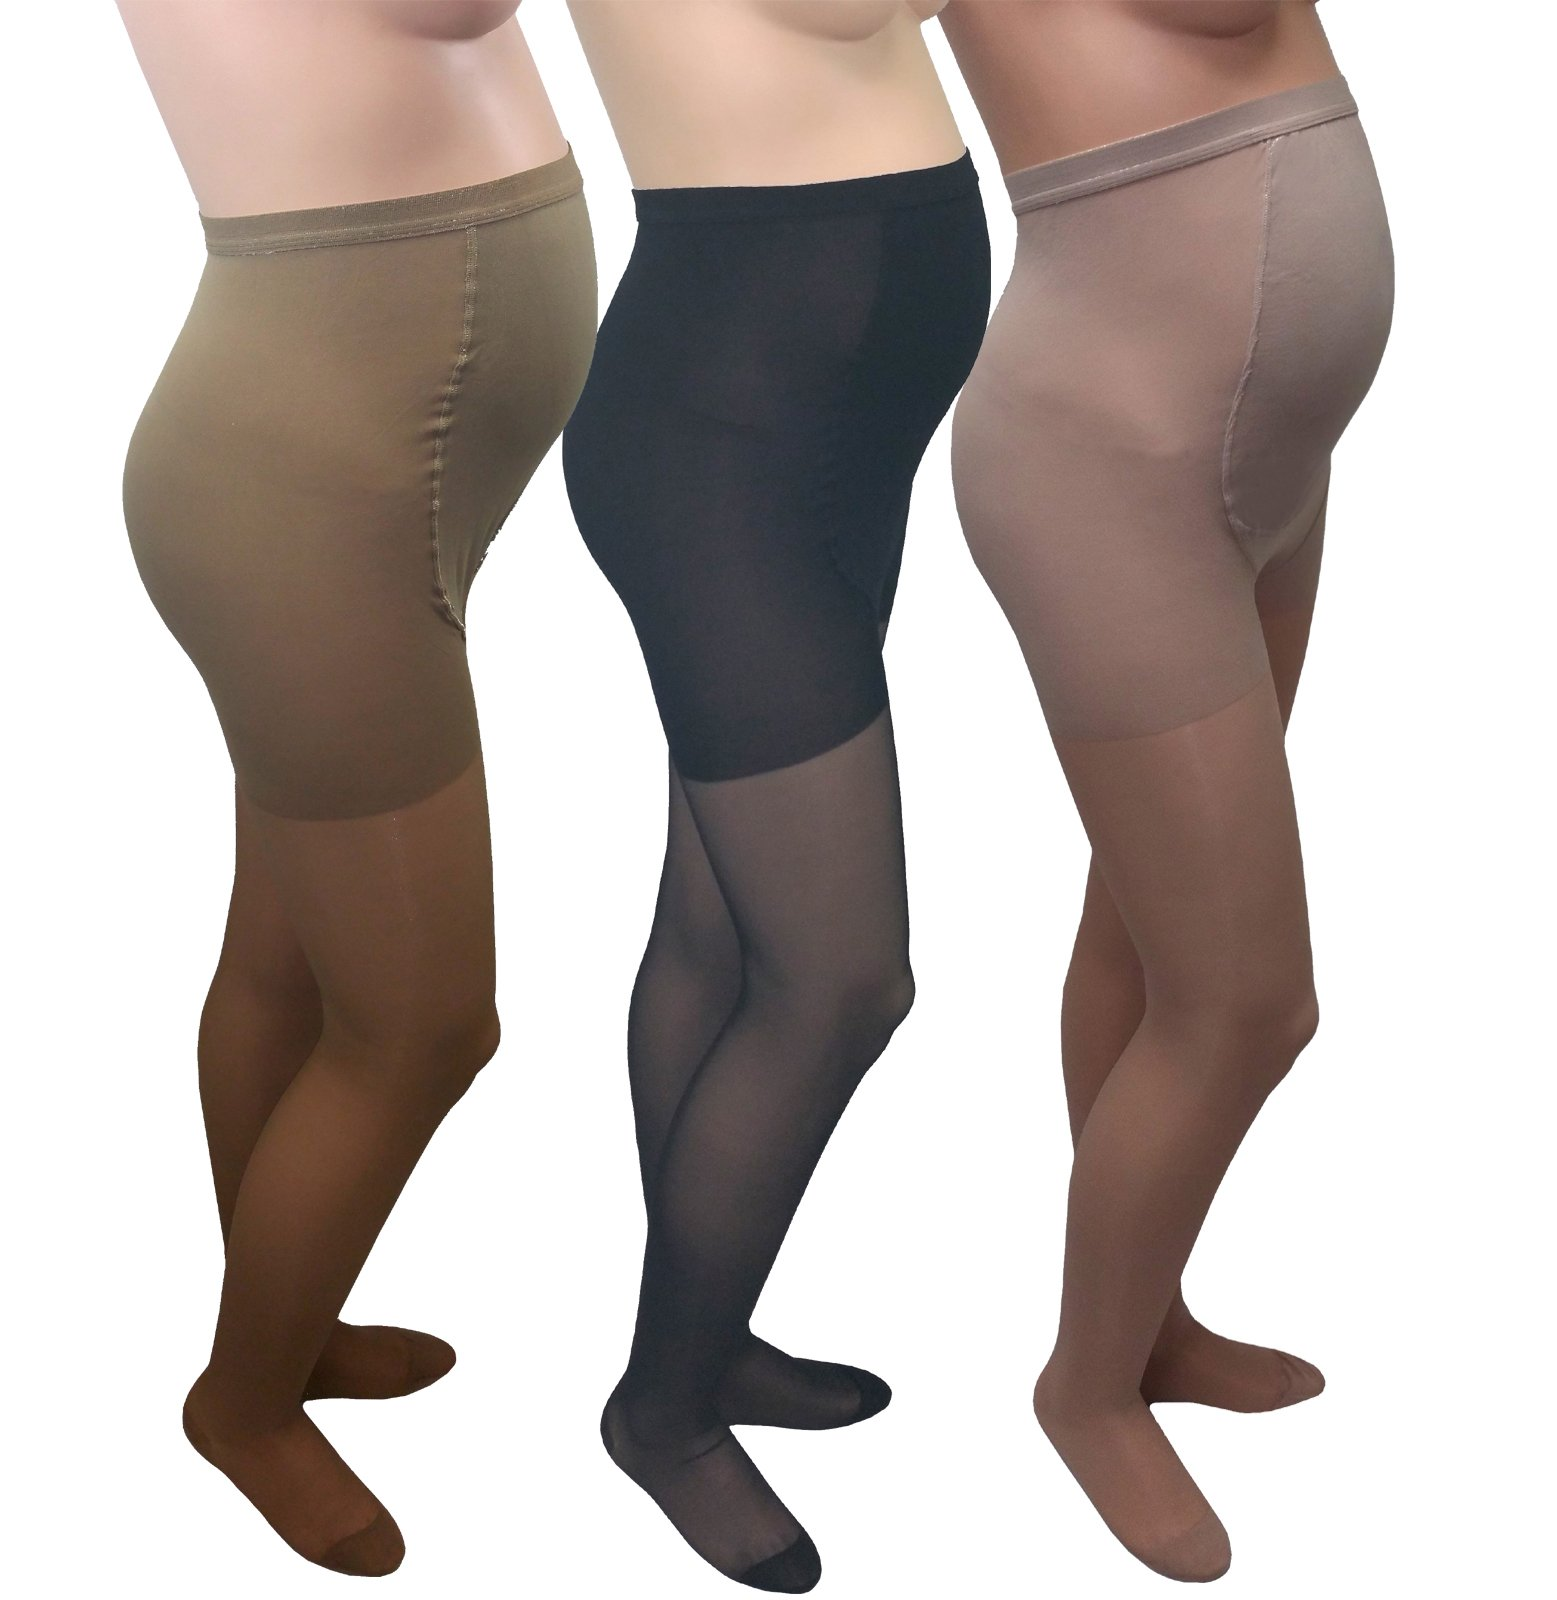 GABRIALLA Maternity Pantyhose - Compression (20-22 mmHg): H-260, 3 Count, Petite, Mixed